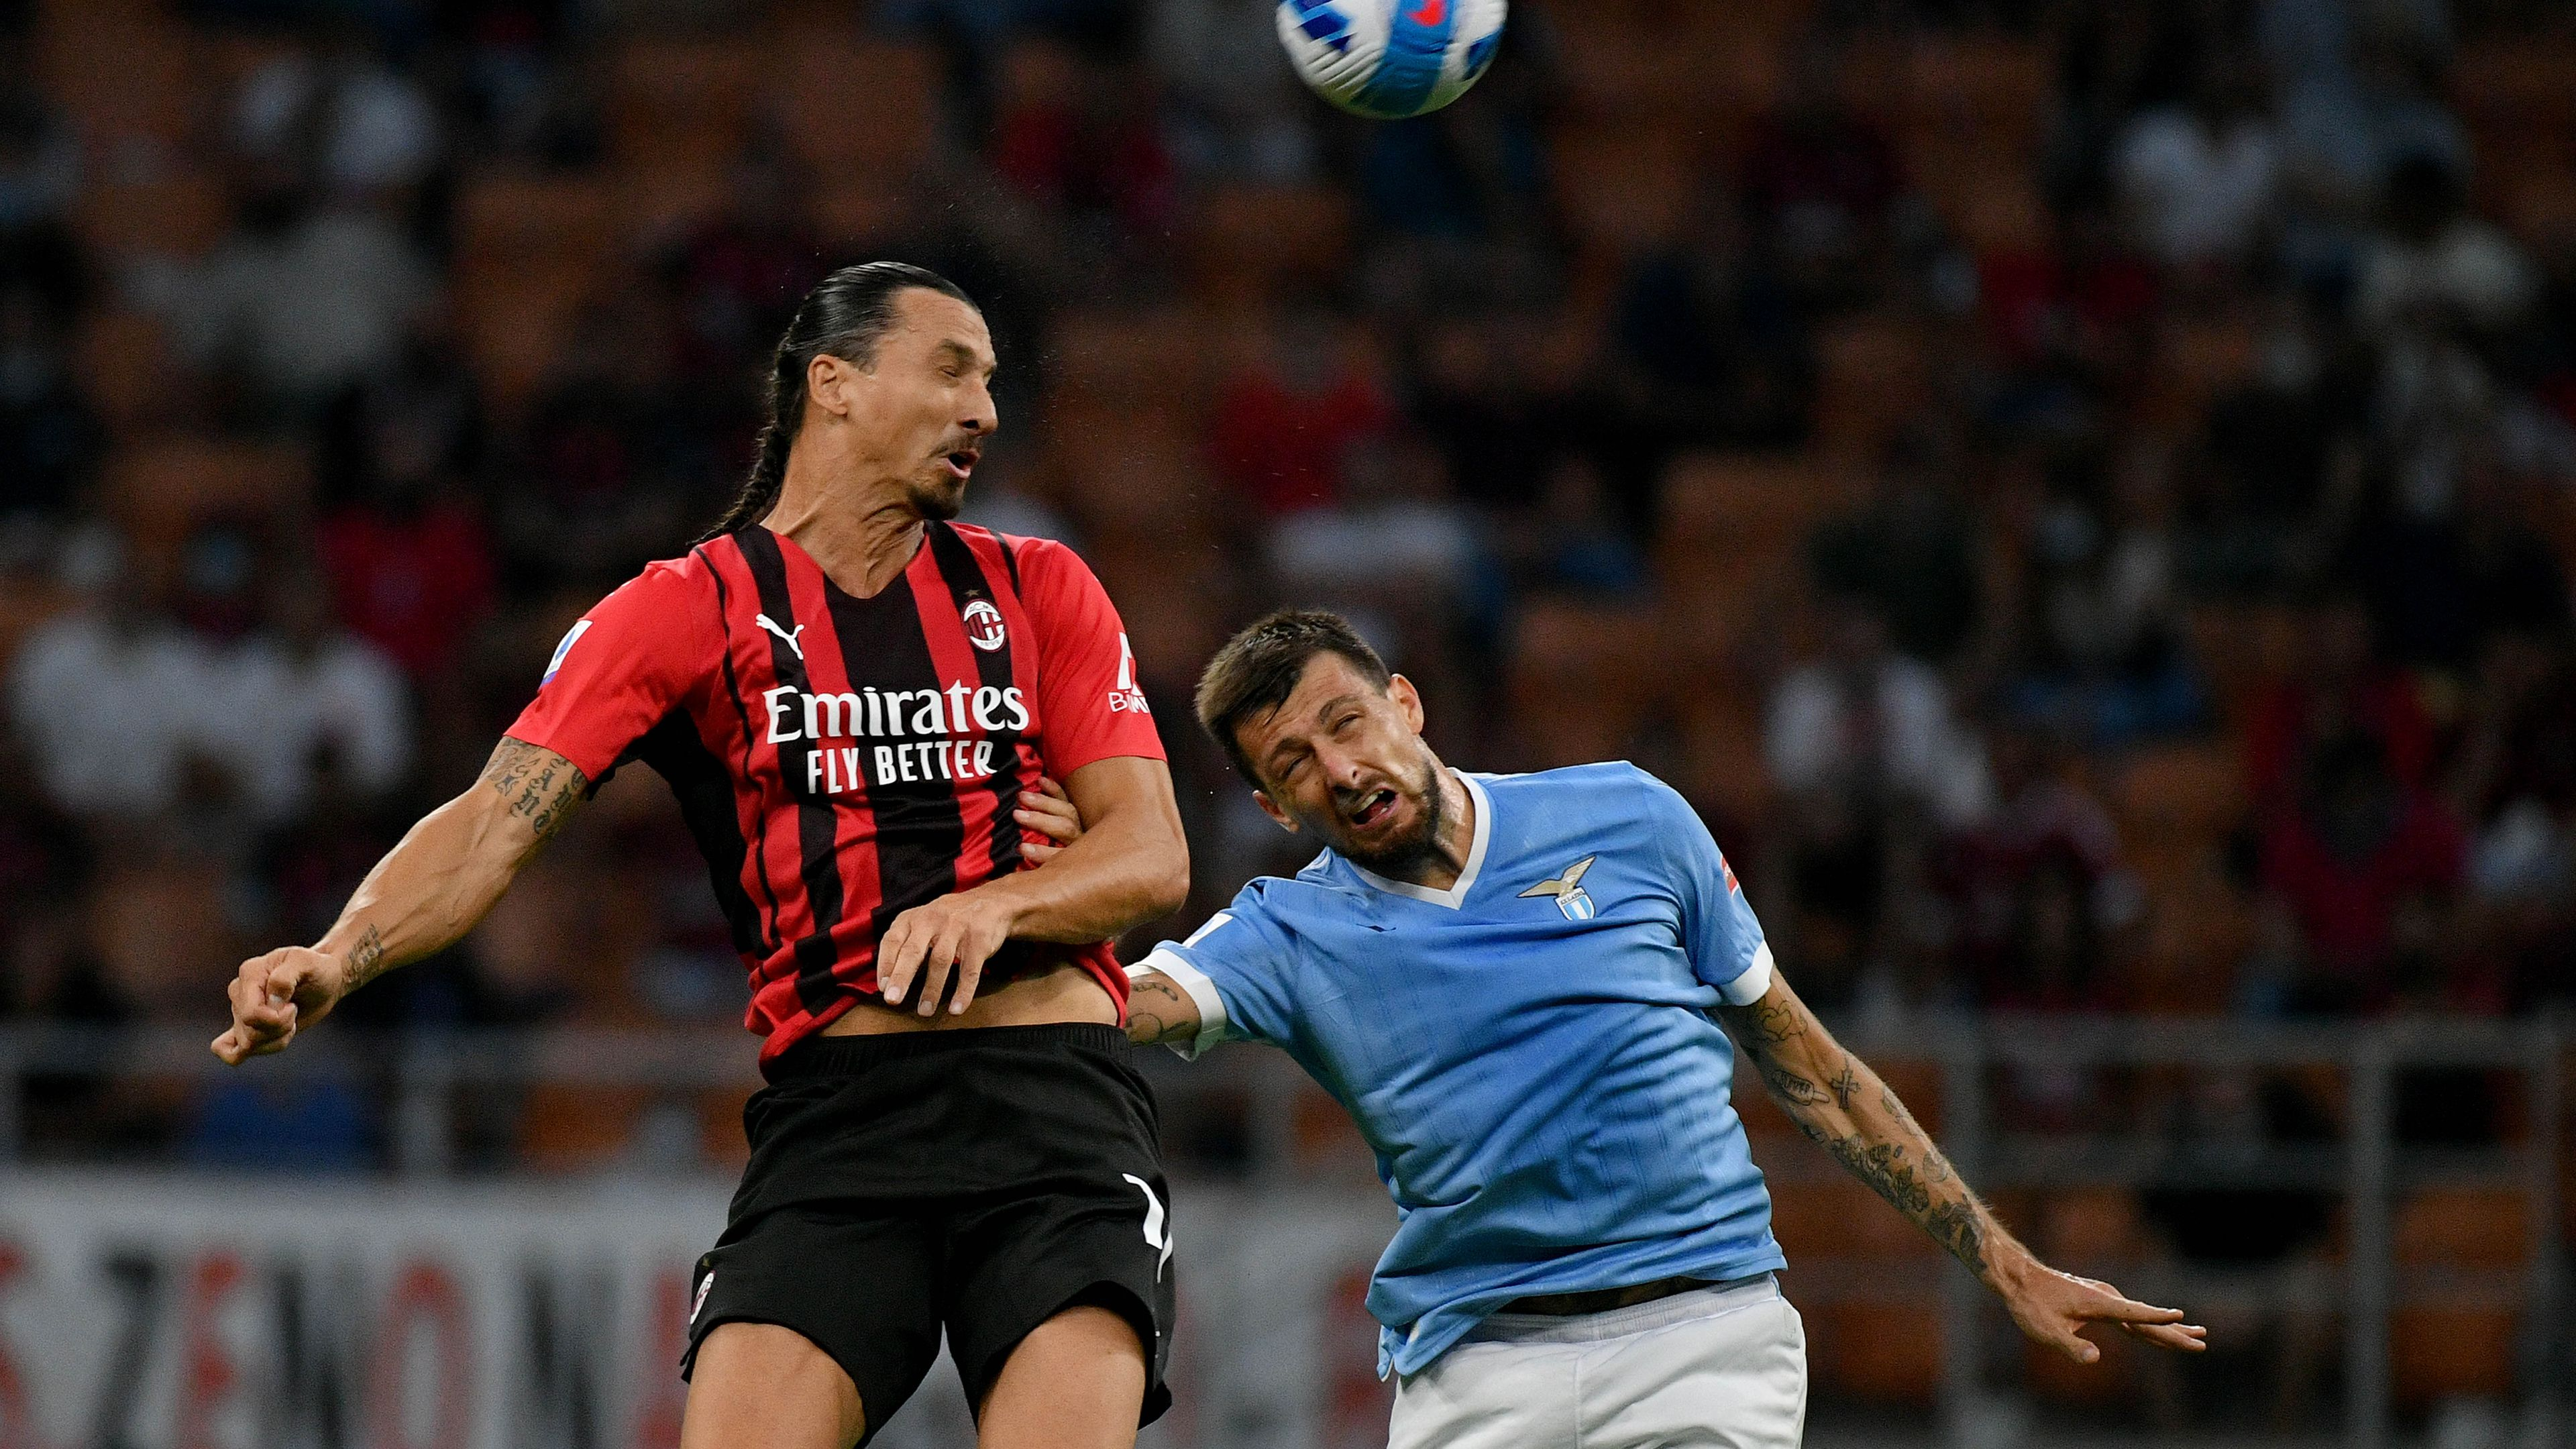 Final plot twist looms in 'best in the world' Zlatan Ibrahimovic's storied football career